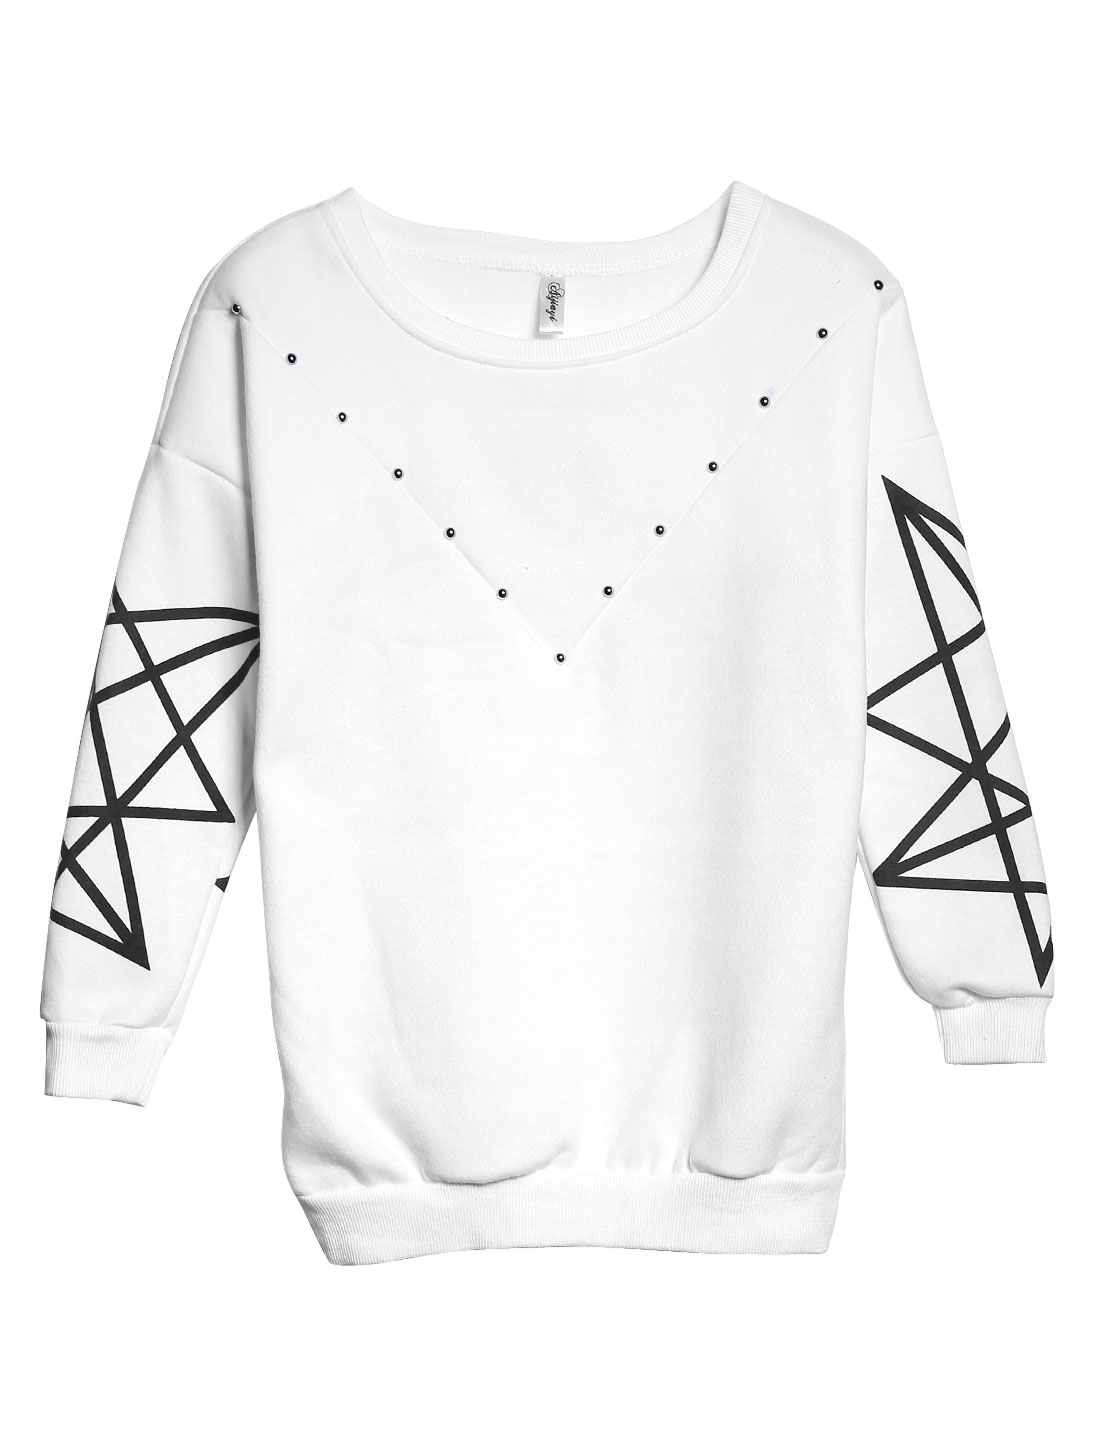 Lady Stars Pattern Round Neck Soft Casual Sweatshirt White XS